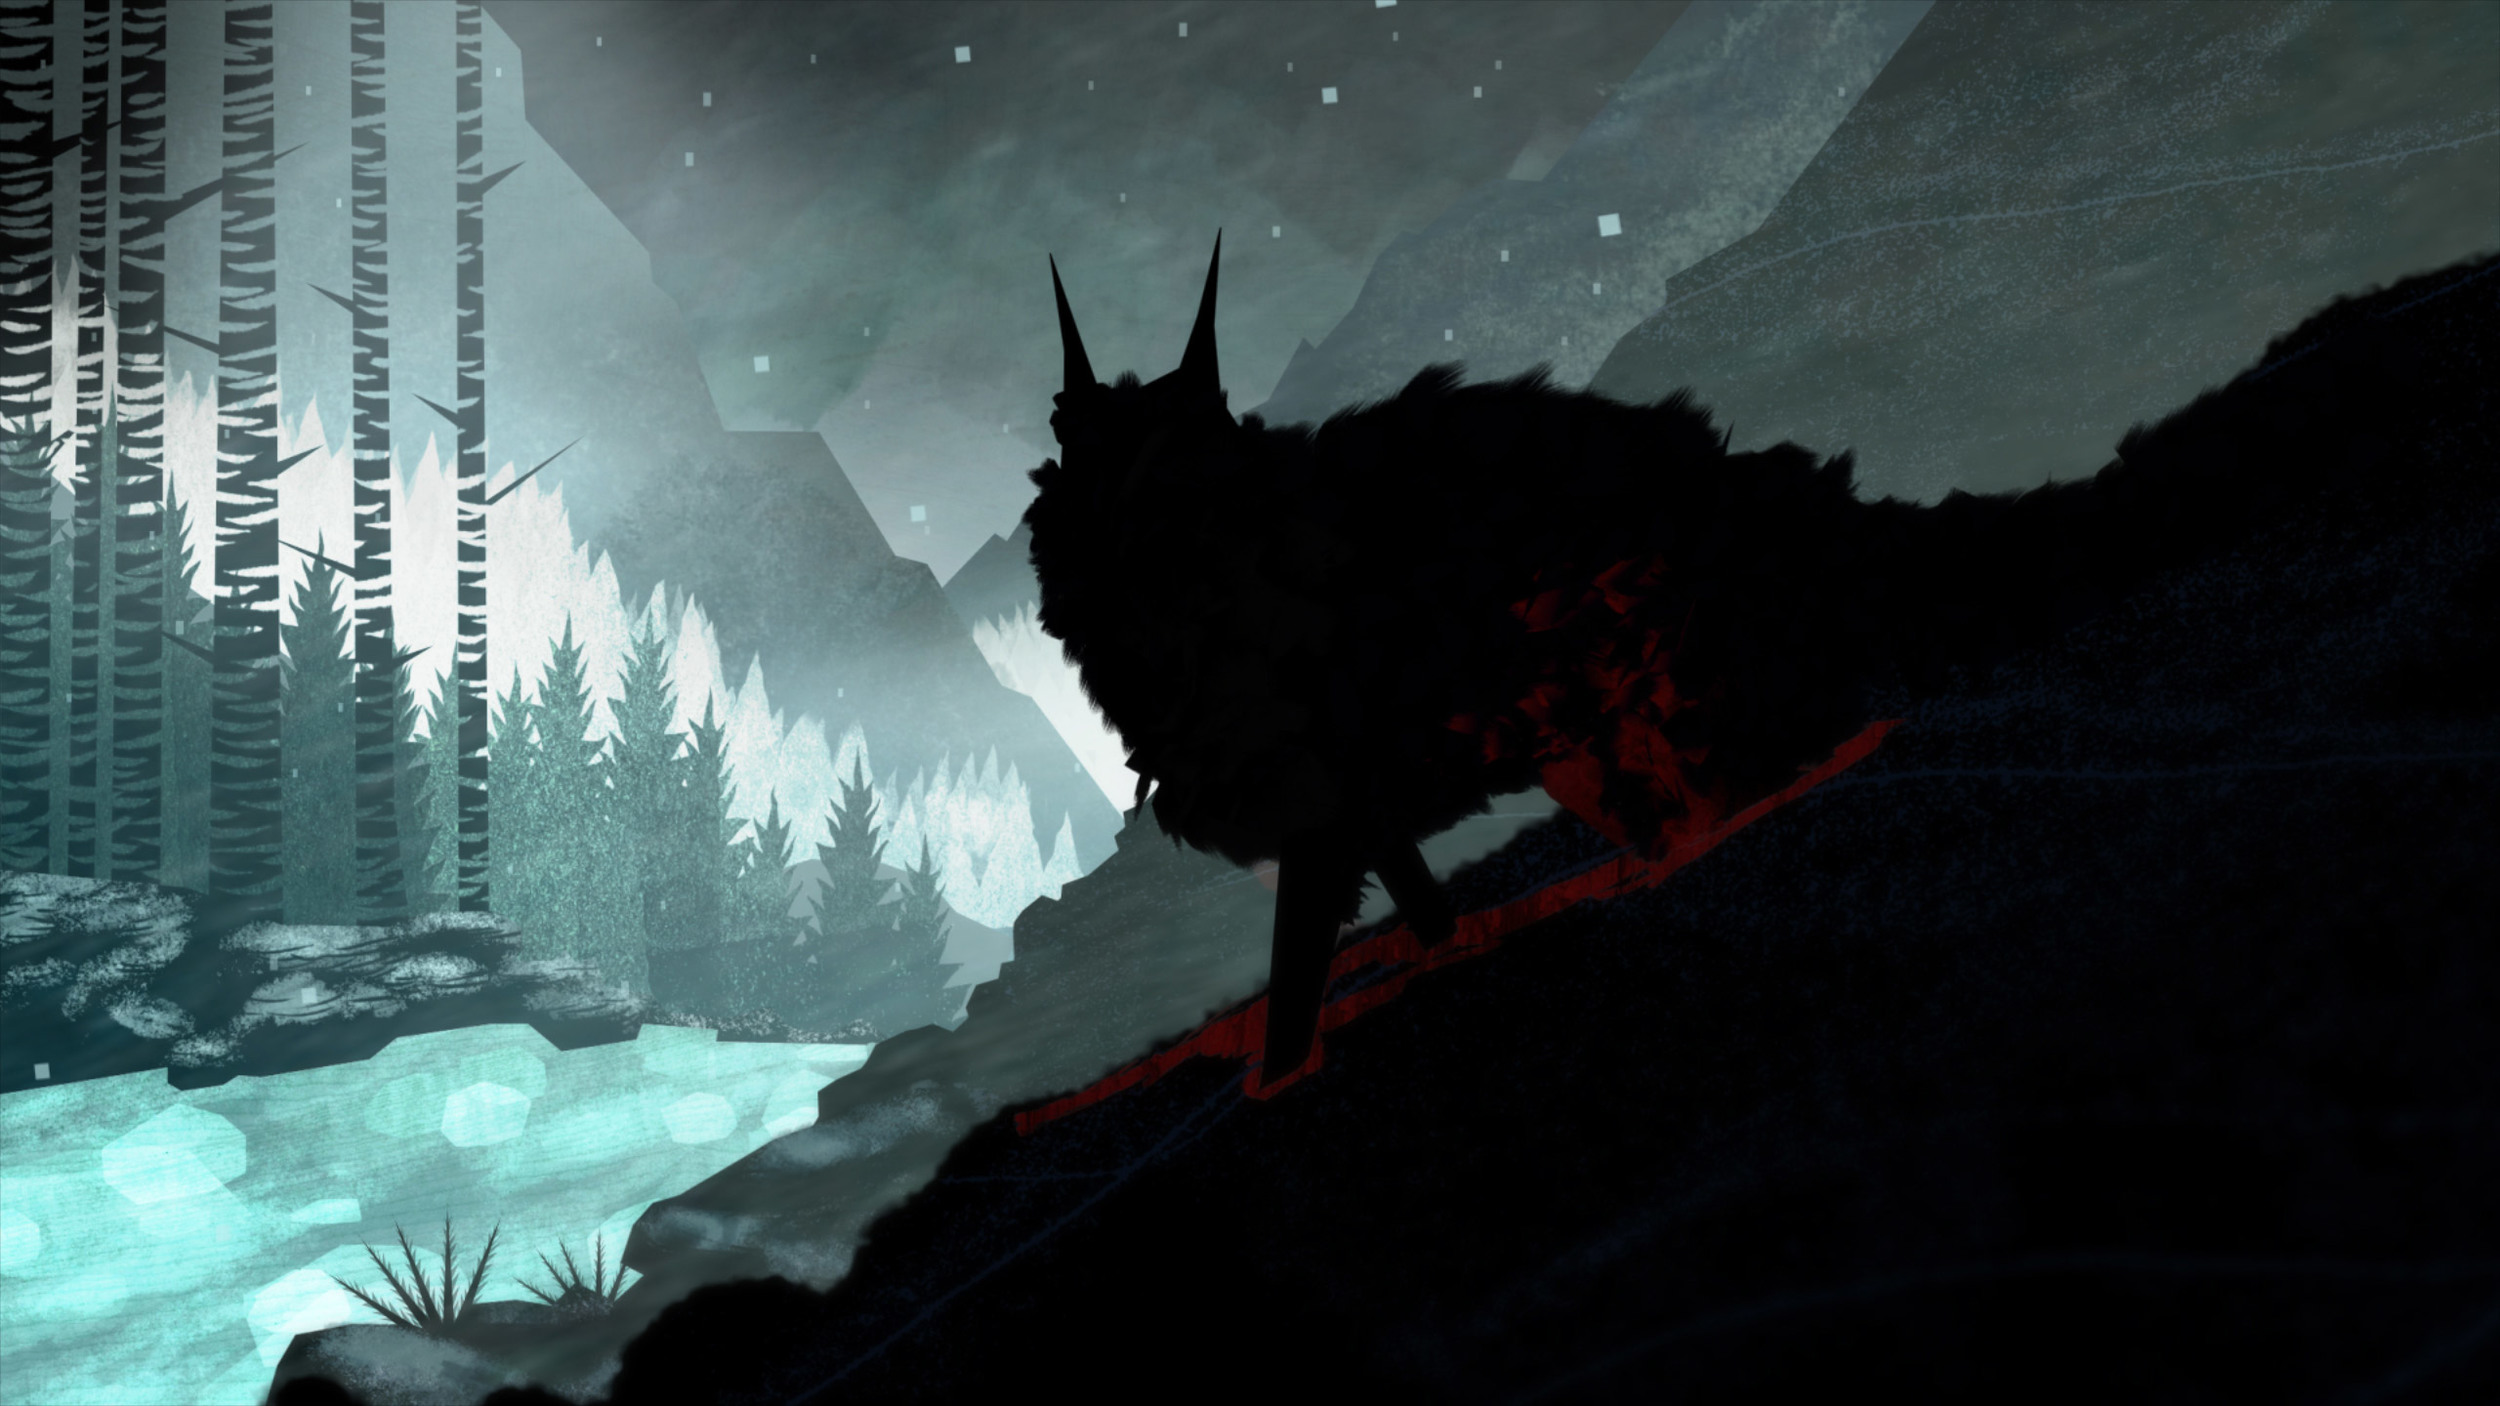 superb-animated-short-film-about-a-boy-and-a-dying-wolf-1.jpg